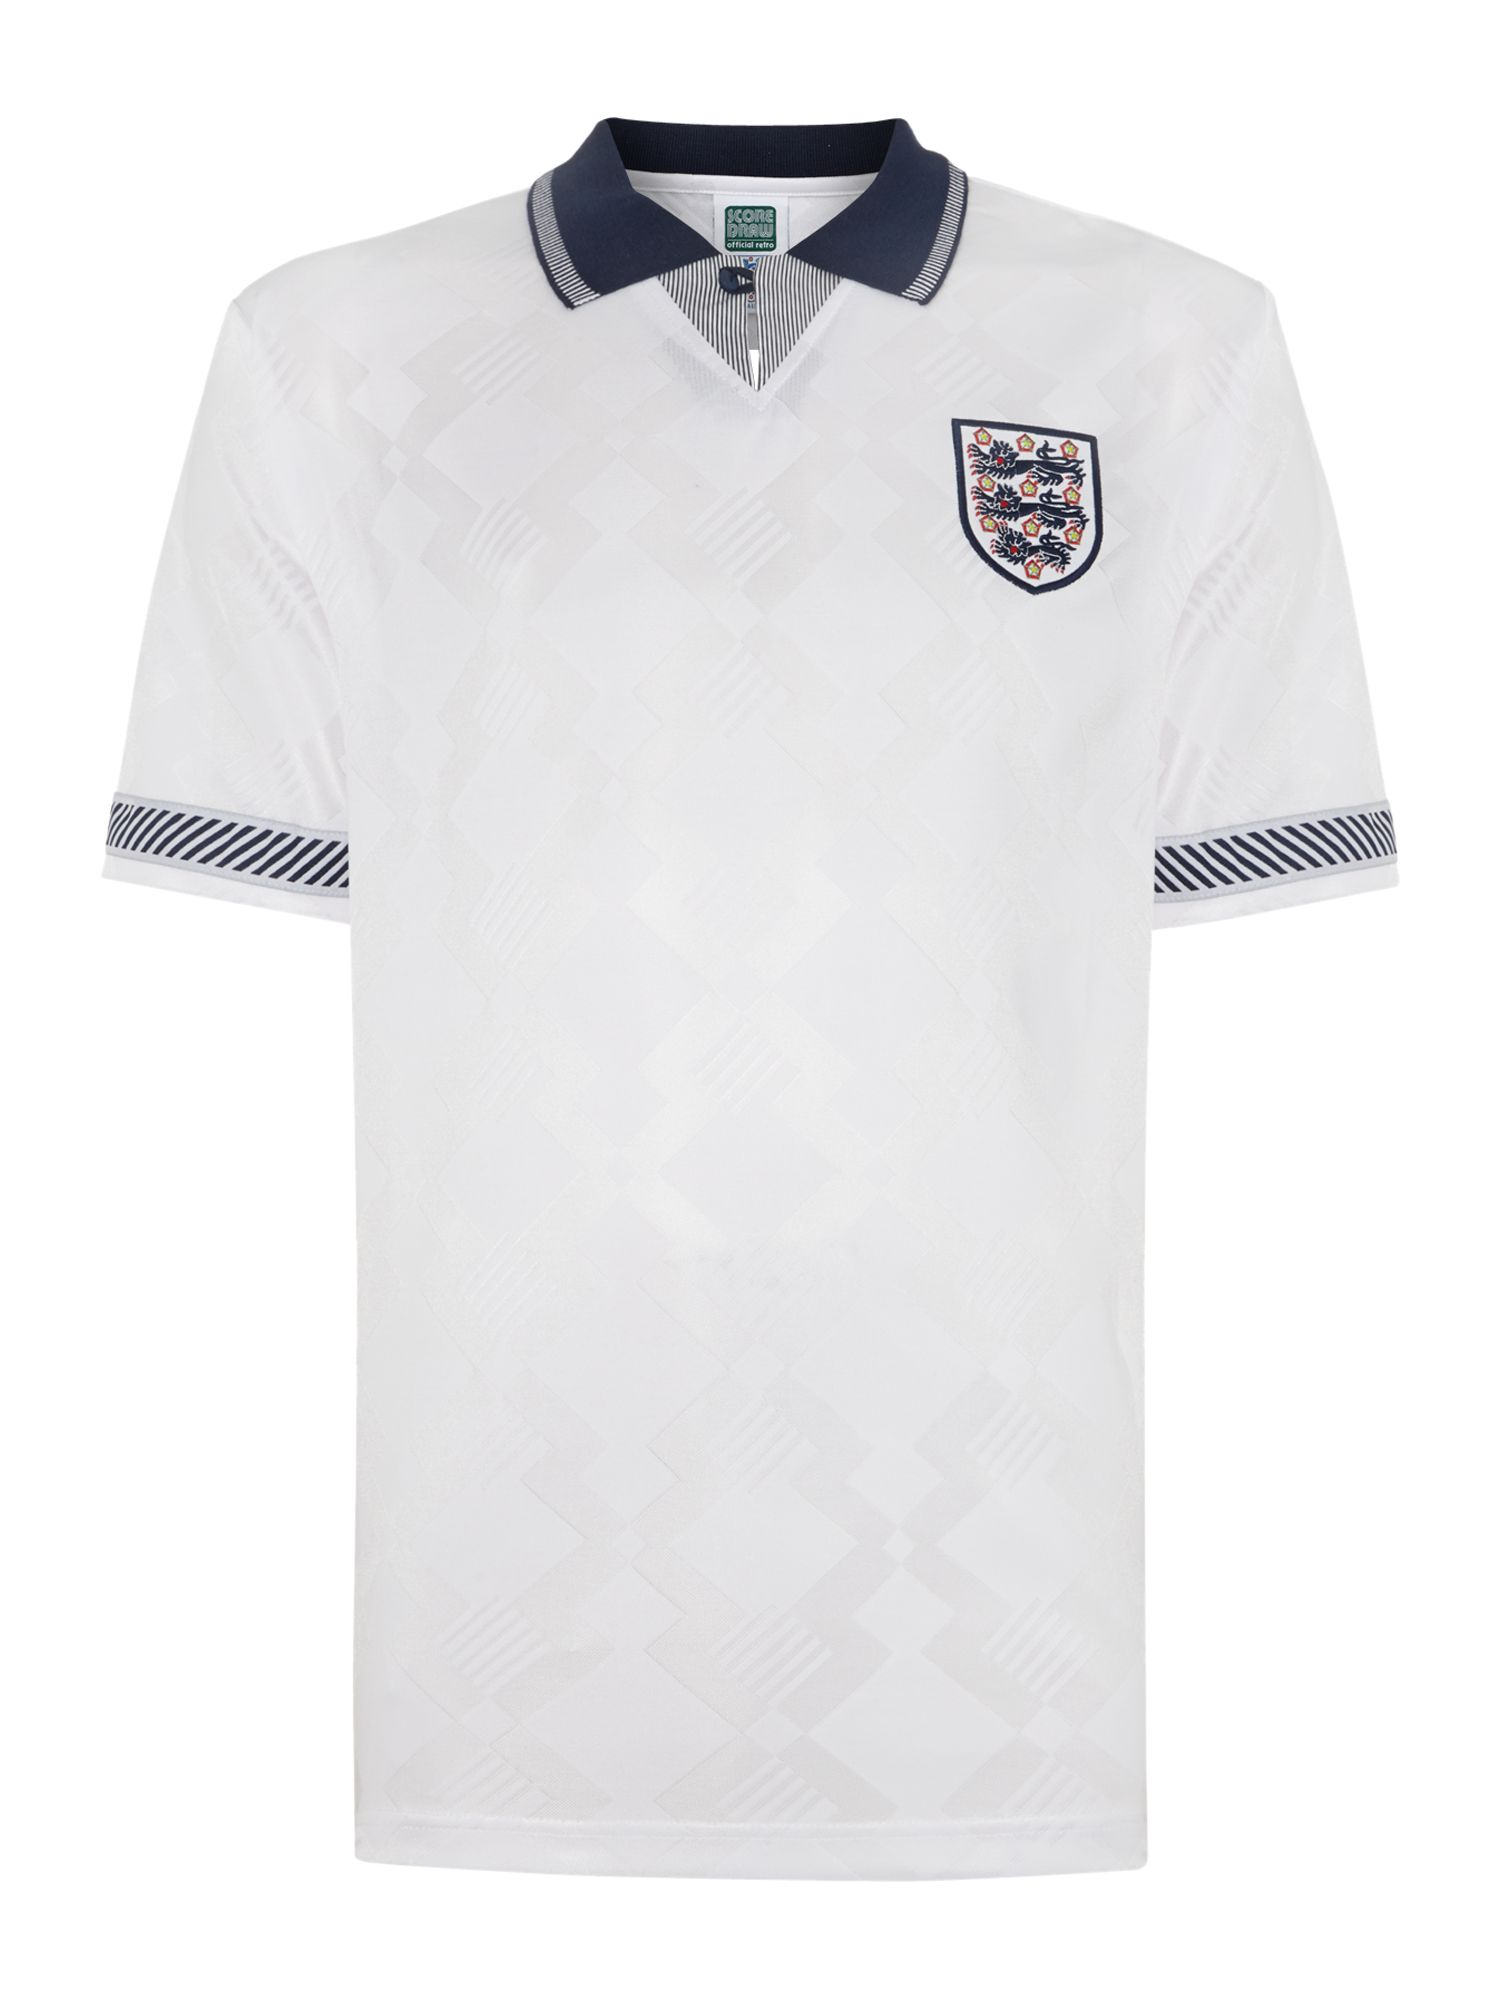 Short sleeve England 1990 home retro jersey